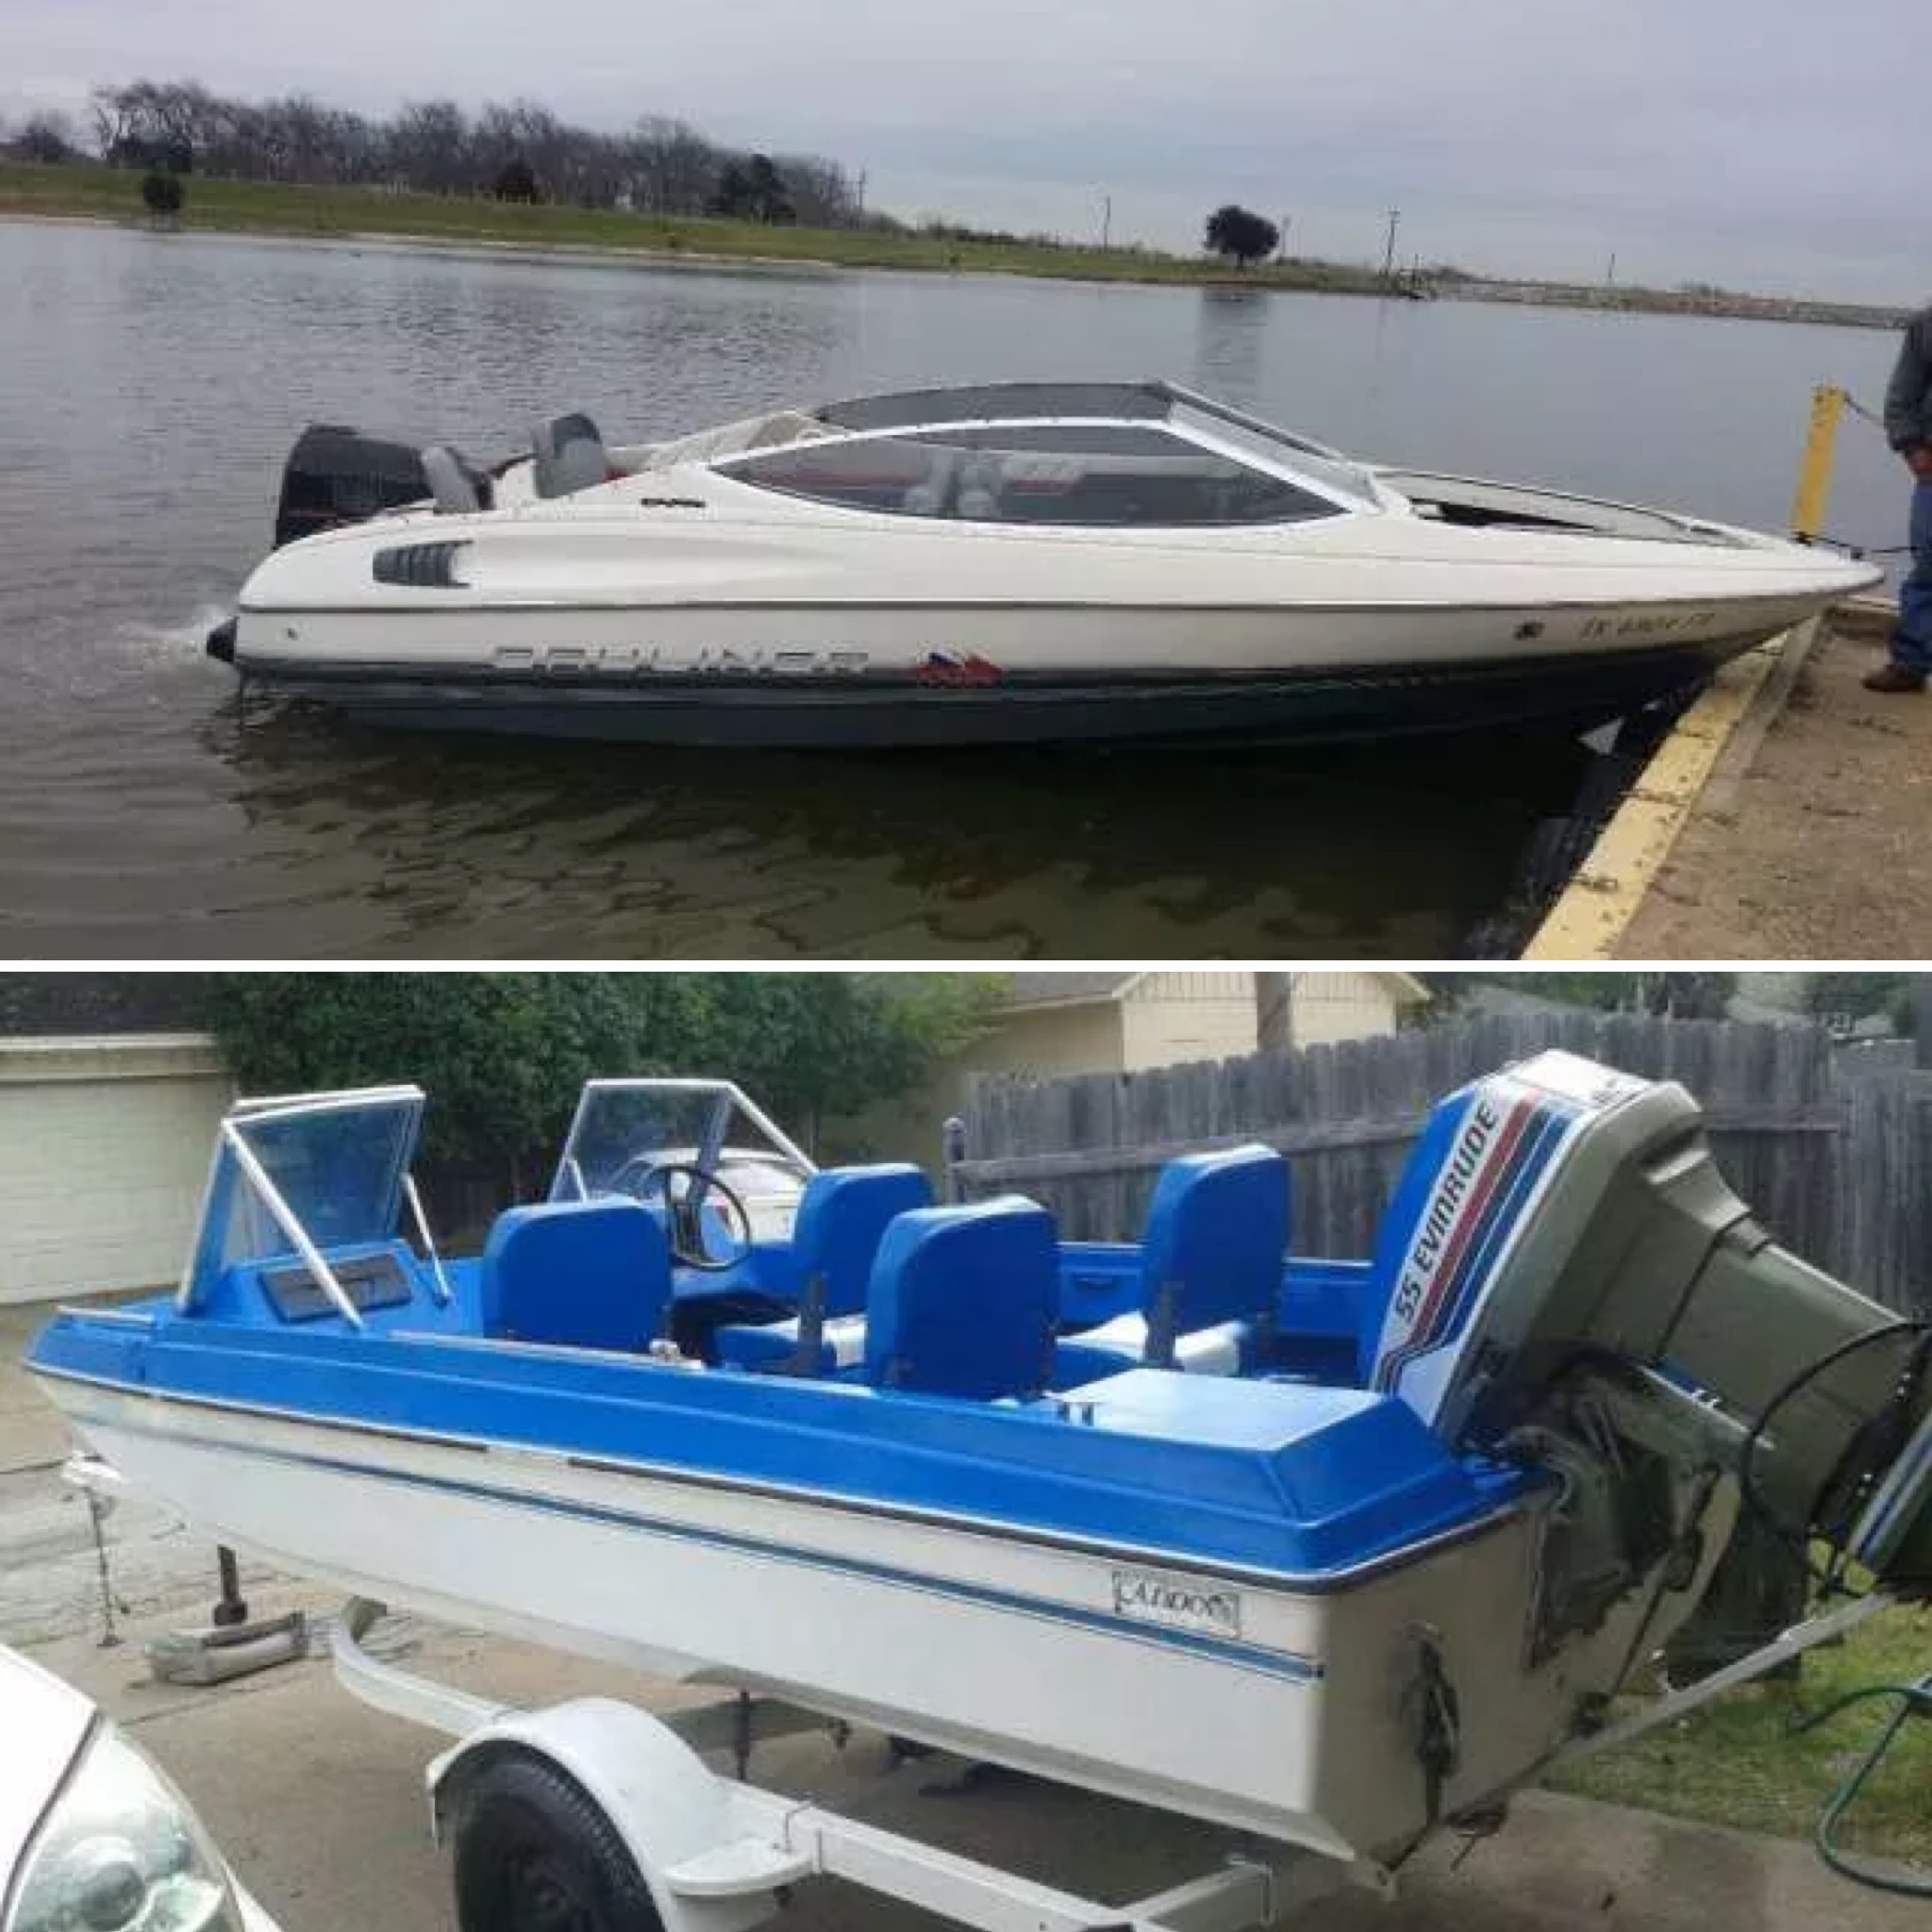 A 1990 Bayliner with trailer ($3,000) vs. a fully-reconditioned 1977 Caddo ($3,200)